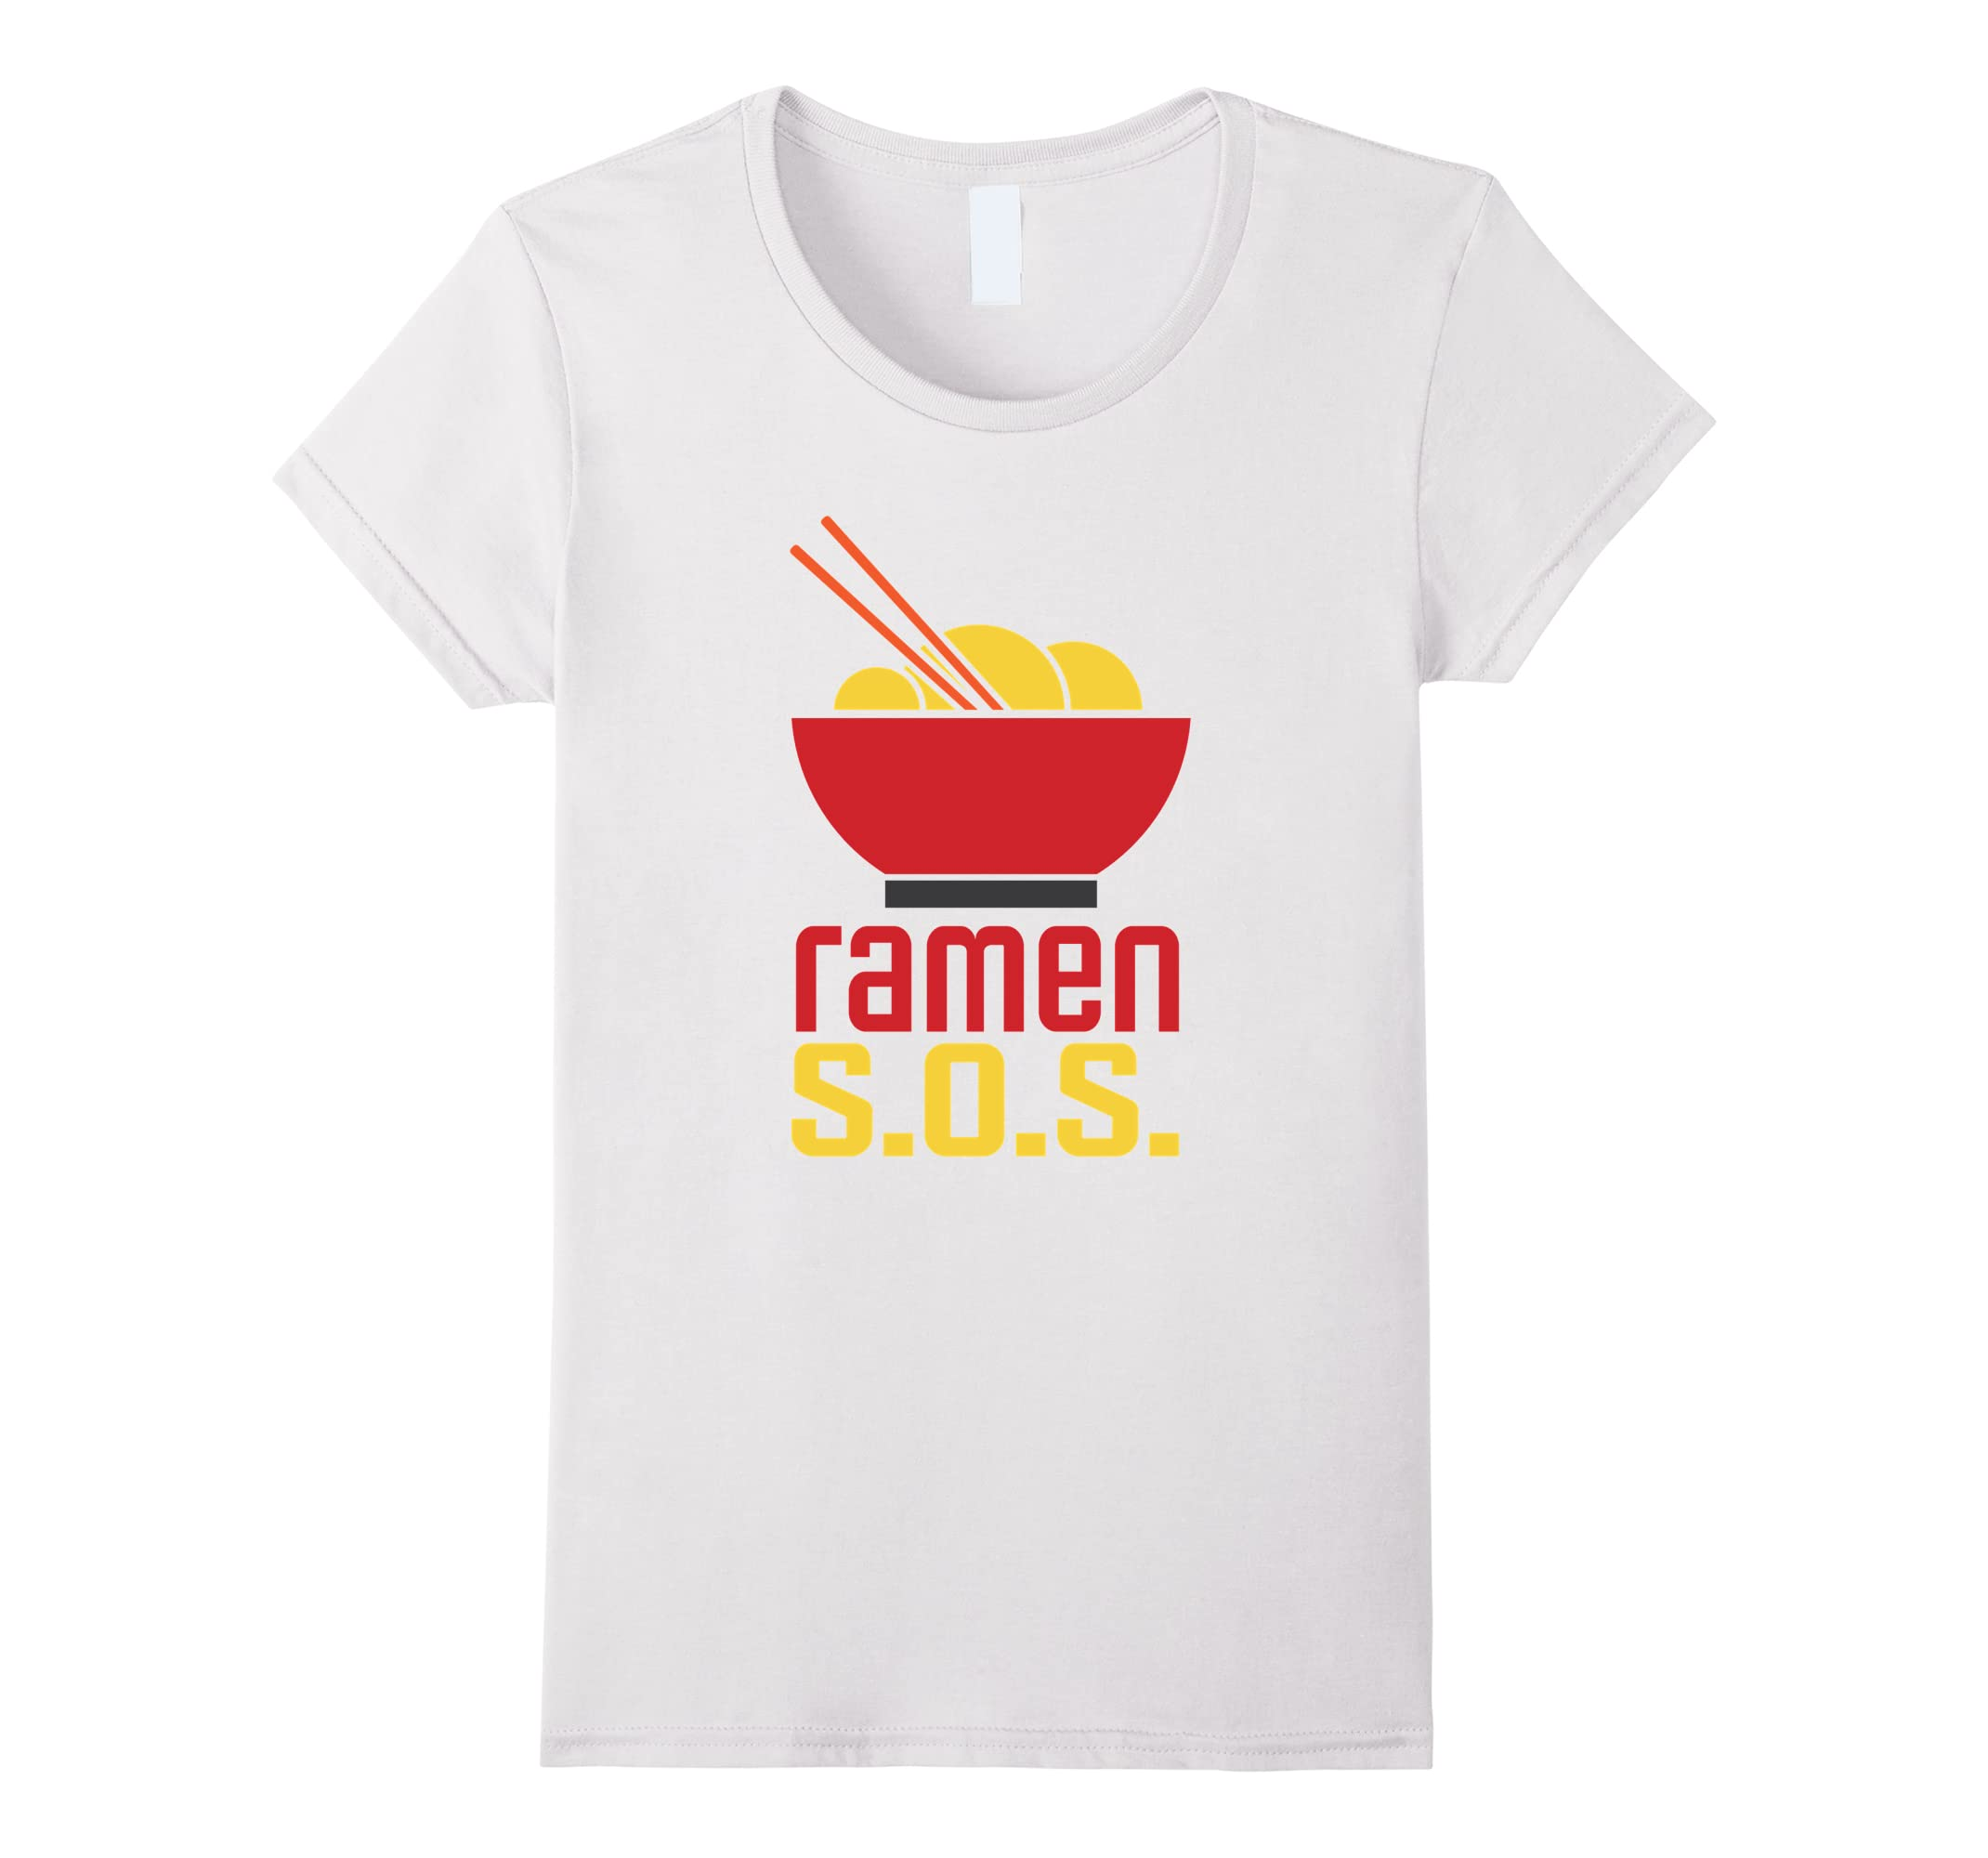 Ramen Sos T Shirt Help Send Noods Noodles French Fries 2000 150 Gr Gift Clothing